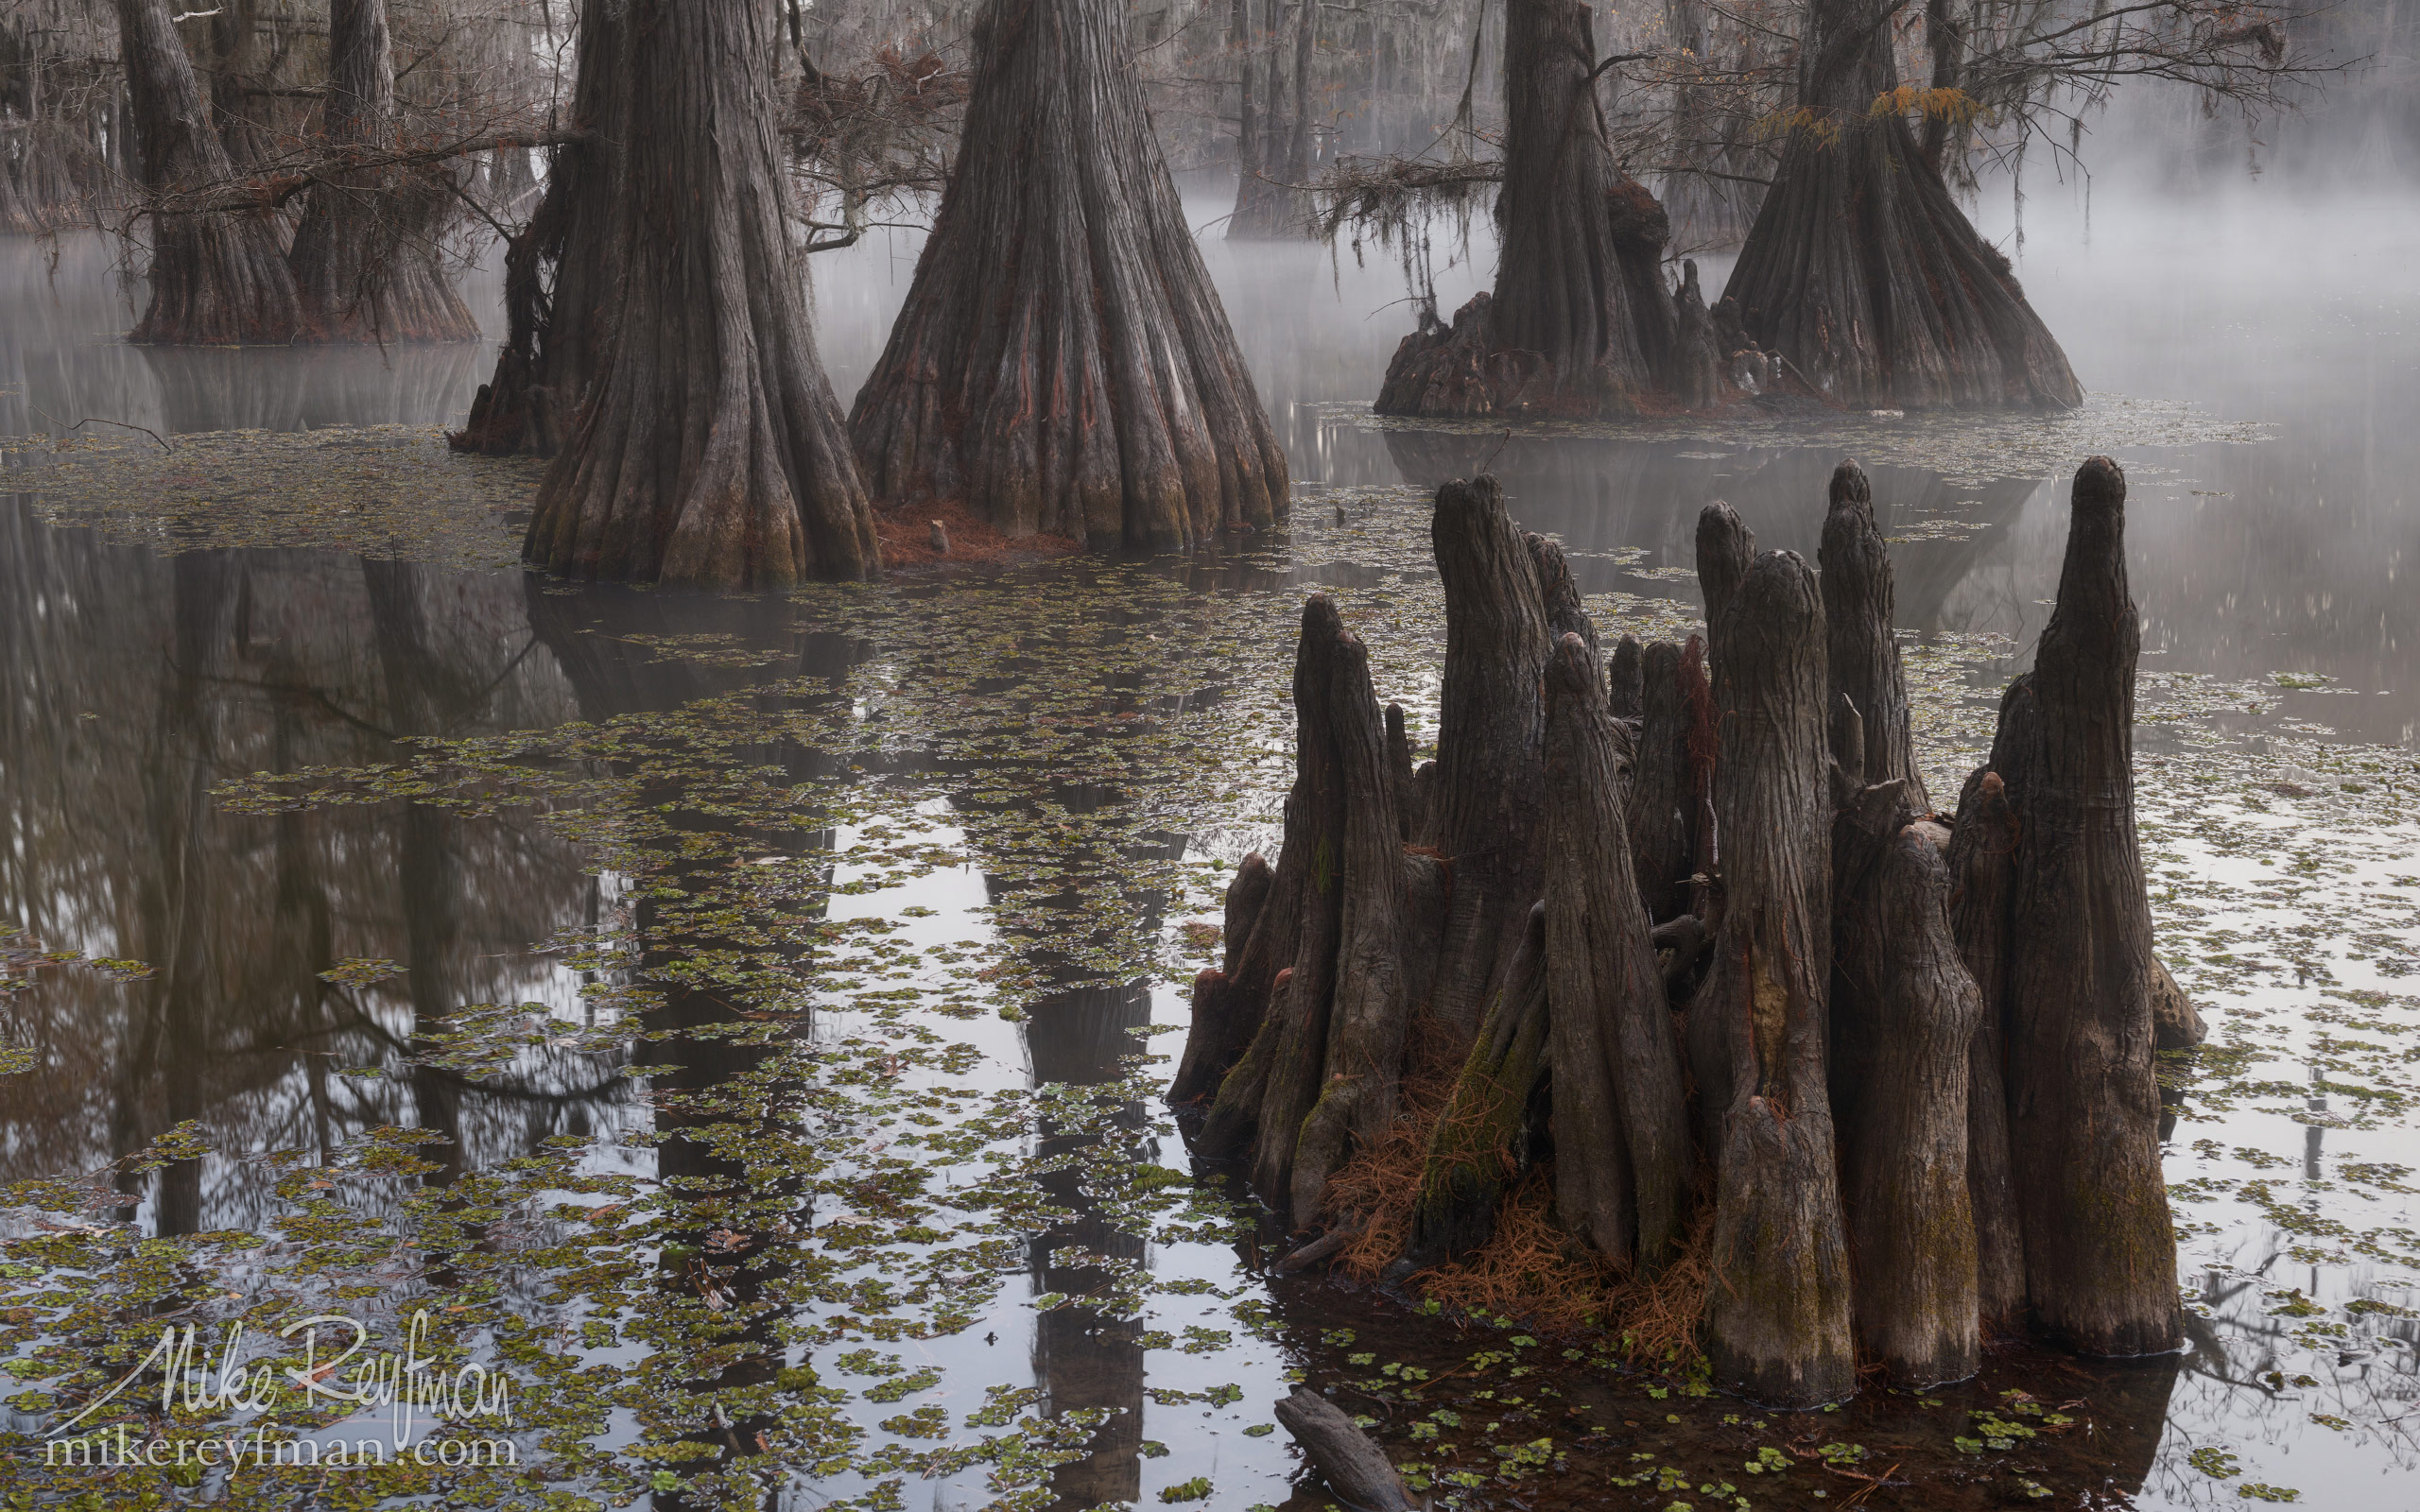 Swamp King's Crown. Bald Cypress trees in the swamp. Foggy morning on Caddo Lake, Texas, US 005_LT1_50A3238.jpg - Bold Cypress and Tupelo Trees in the swamps of Atchafalaya River Basin. Caddo, Martin and Fousse Lakes. Texas/Louisiana, USA. - Mike Reyfman Photography